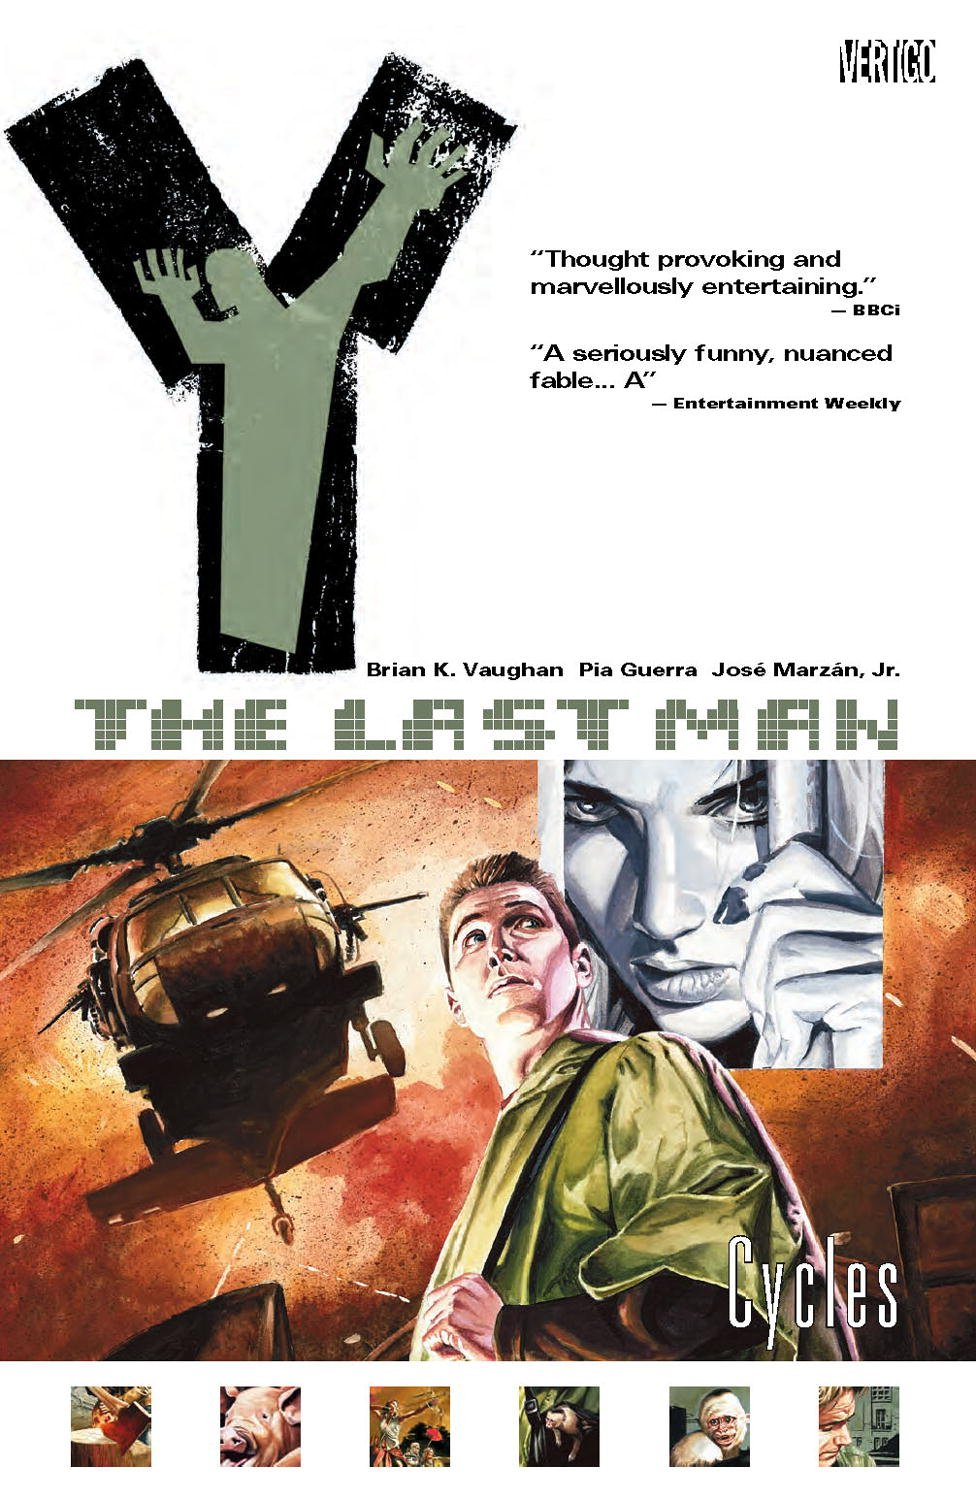 Amazon.com: Y: The Last Man, Vol. 2: Cycles (0001401200761): Brian K.  Vaughan, Pia Guerra, Jose Marzan: Books